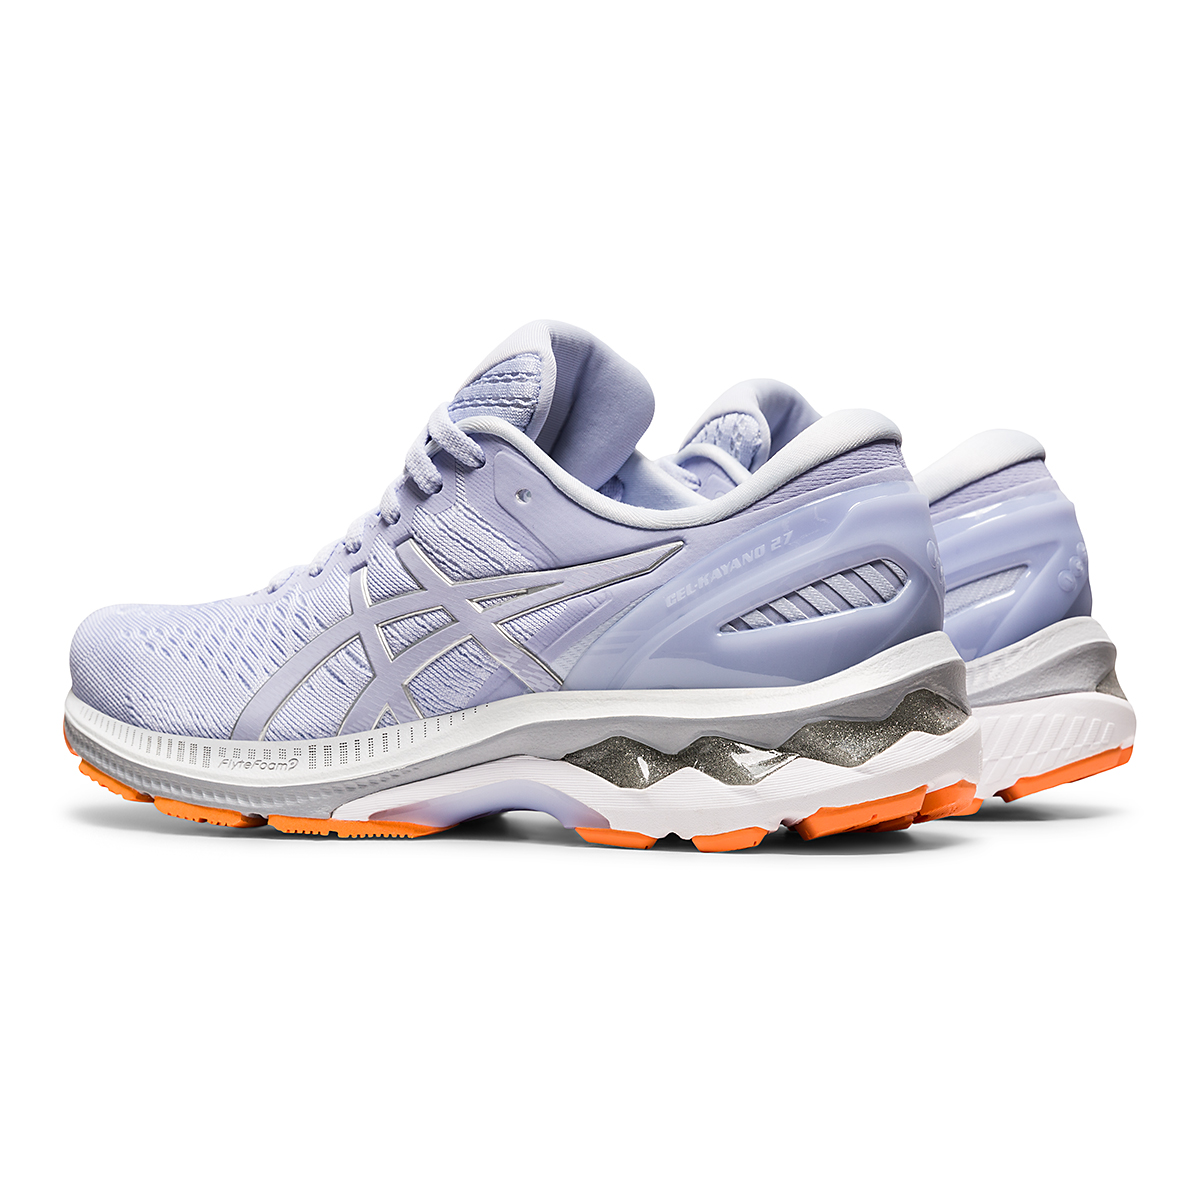 Women's Asics GEL-Kayano 27 Running Shoe - Color: Lilac Opal/Pure Silver - Size: 6 - Width: Regular, Lilac Opal/Pure Silver, large, image 4